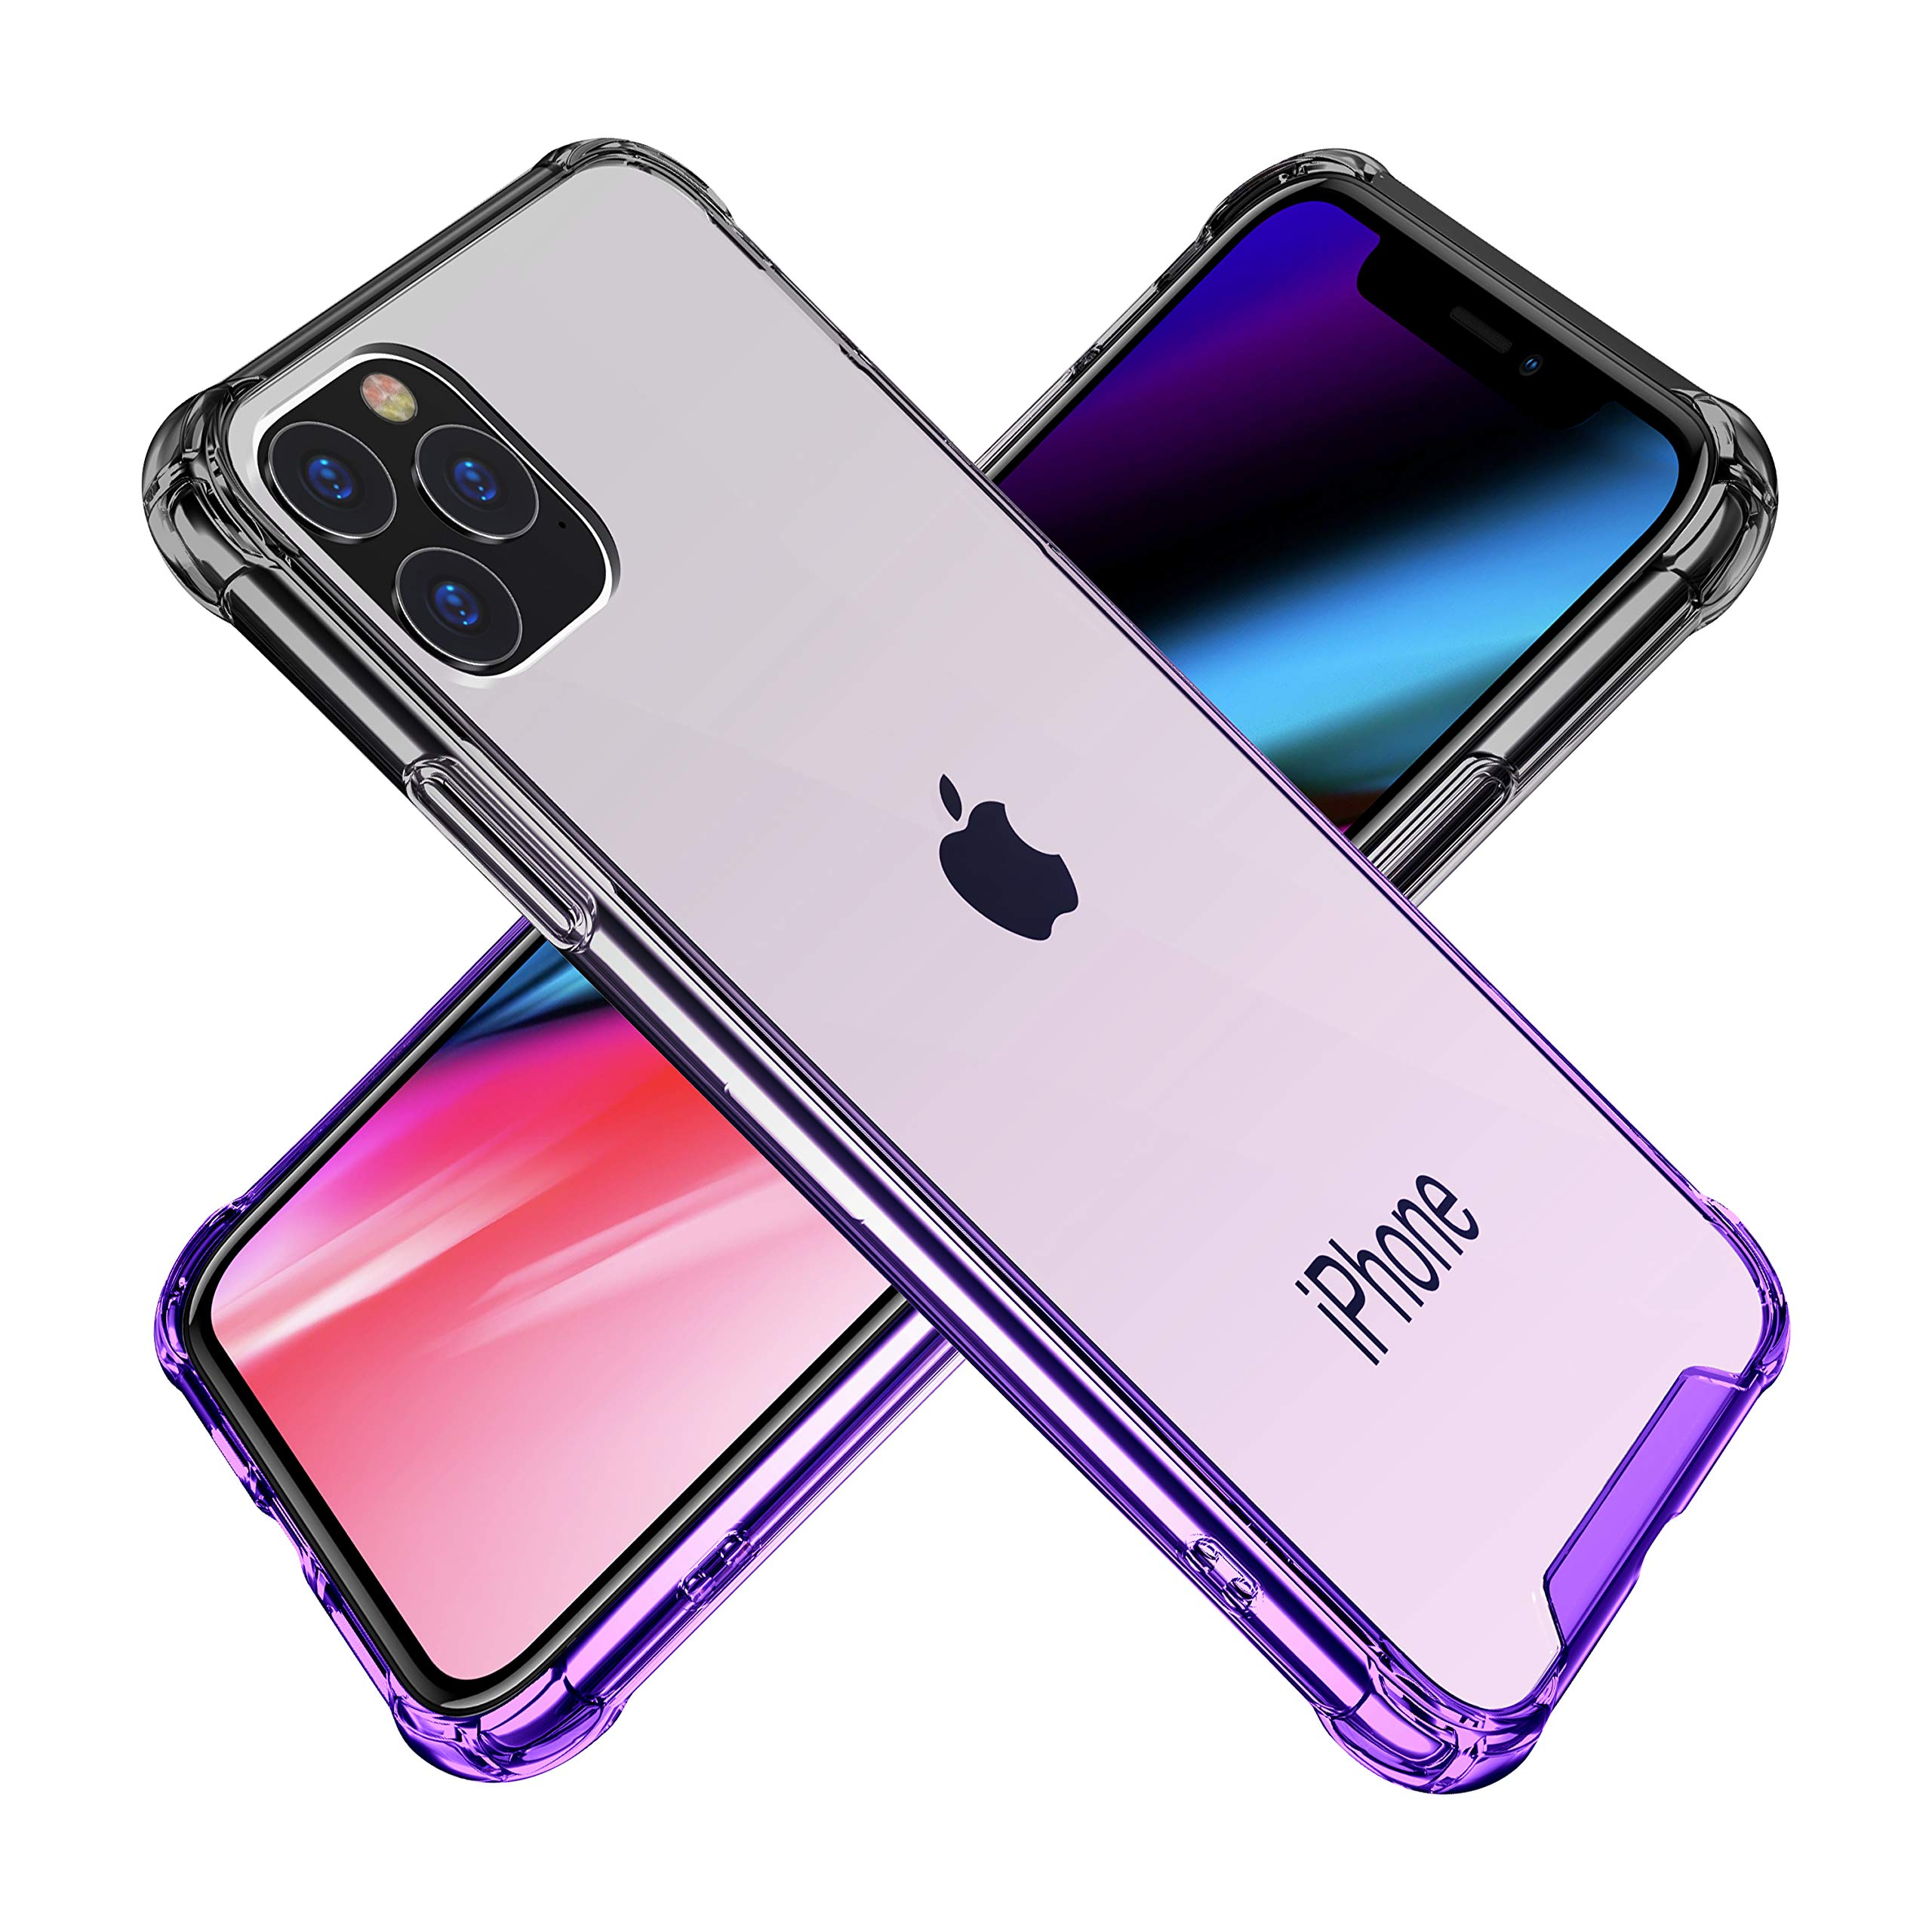 BAISRKE iPhone 11 Pro Case, Slim Shock Absorption Protective Cases Soft TPU Bumper & Hard Plastic Back Cover for iPhone 11 Pro 2019 [5.8 inch] - Black Purple Gradient